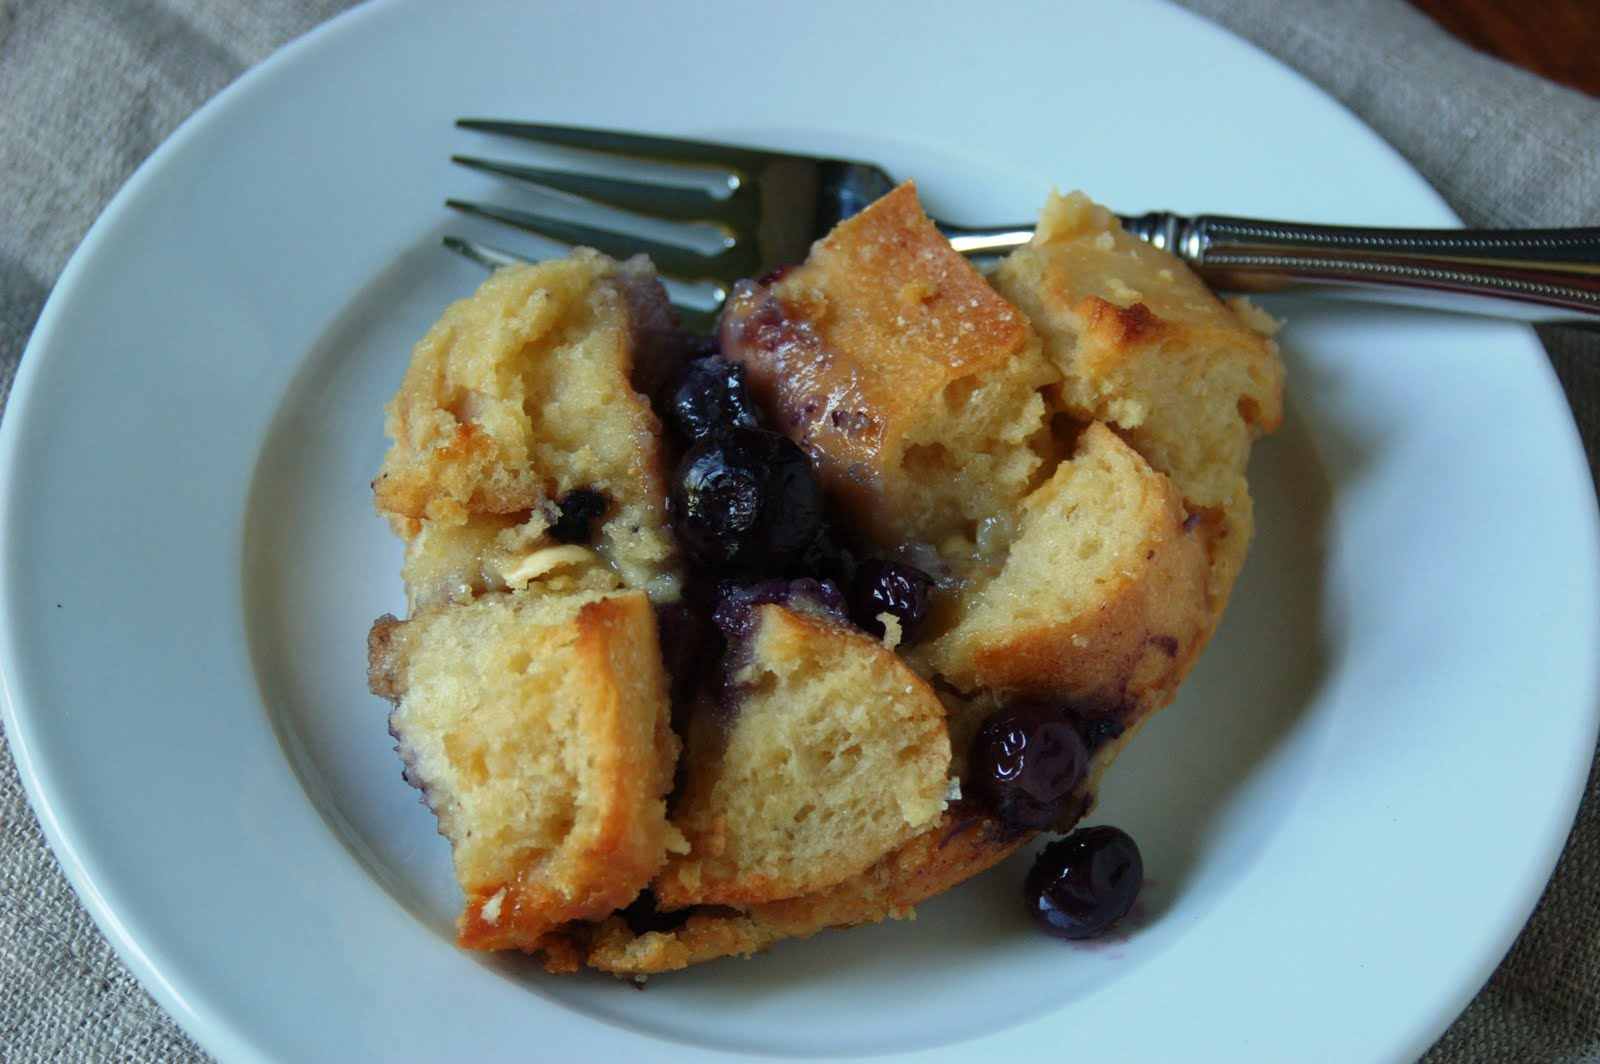 Another Marvelous Meal: White Chocolate Blueberry Bread Pudding